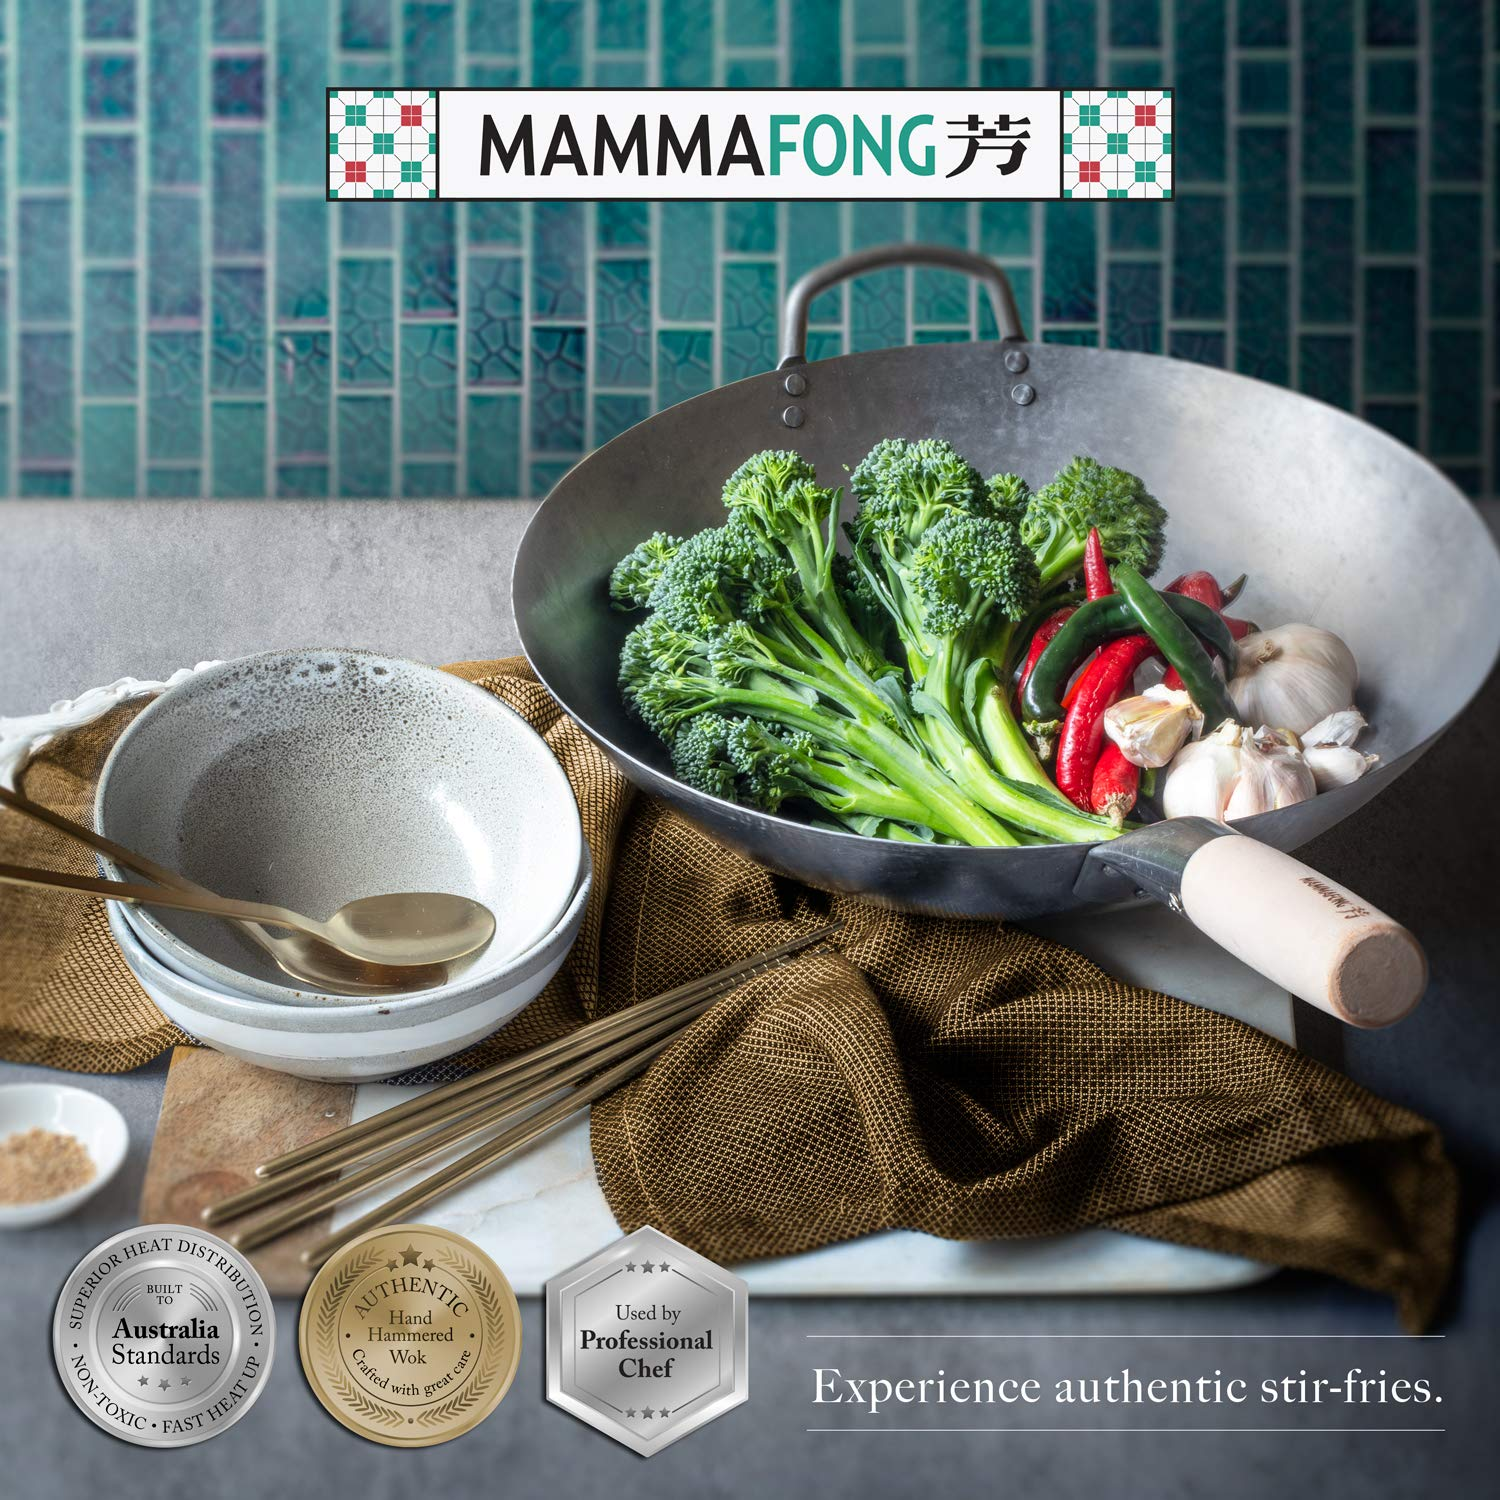 Flat Bottom Wok, Traditional Hand Hammered Wok, 14 Inch Carbon Steel Chinese Pow Wok by Mammafong by Mammafong (Image #7)